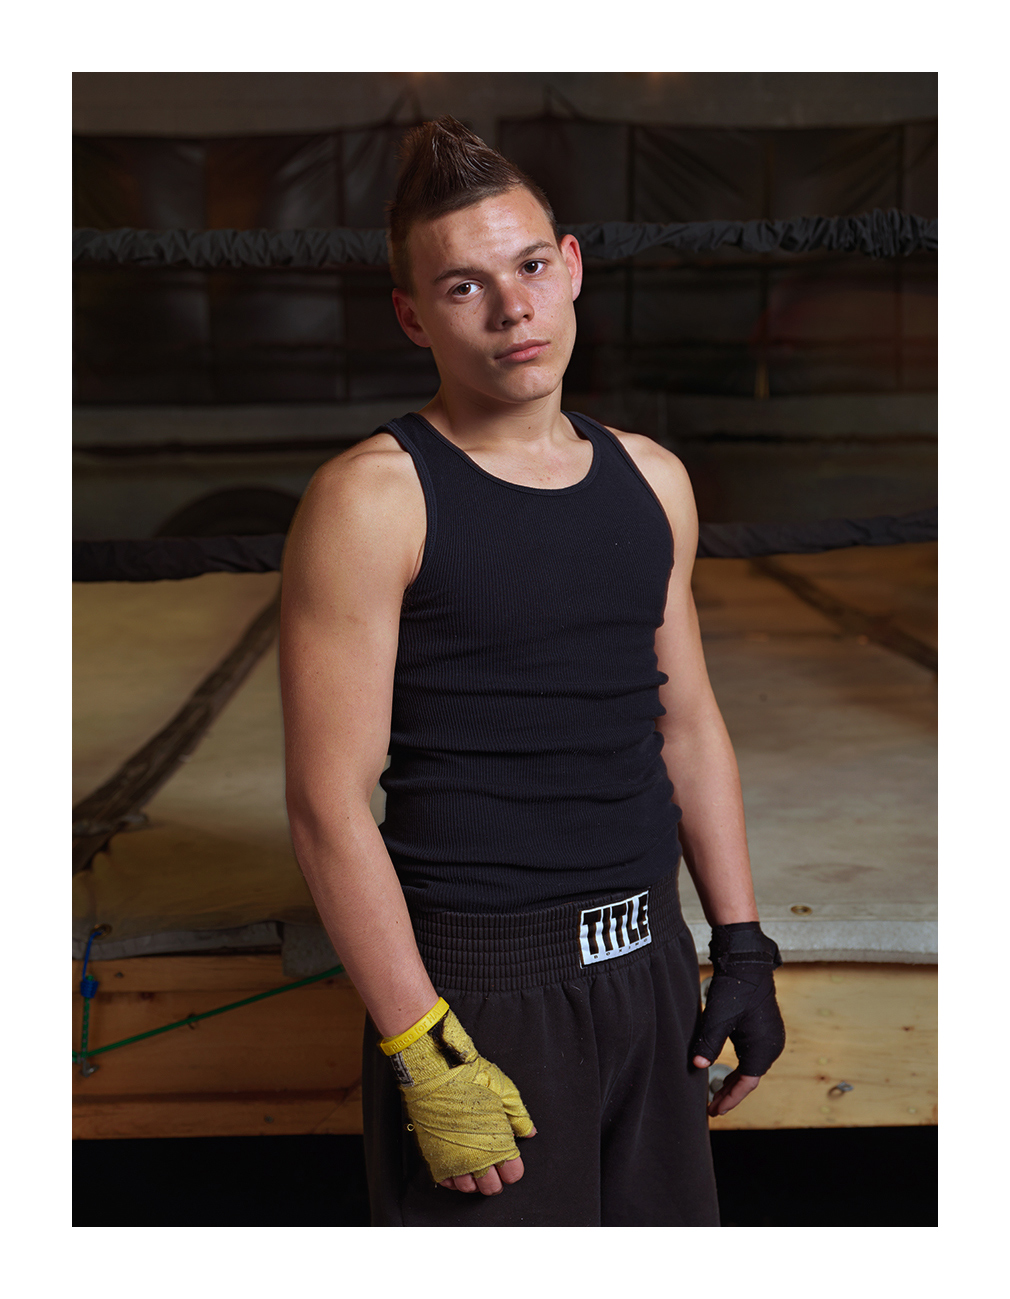 Alex, Downtown Boxing Gym, Poletown, Detroit 2011